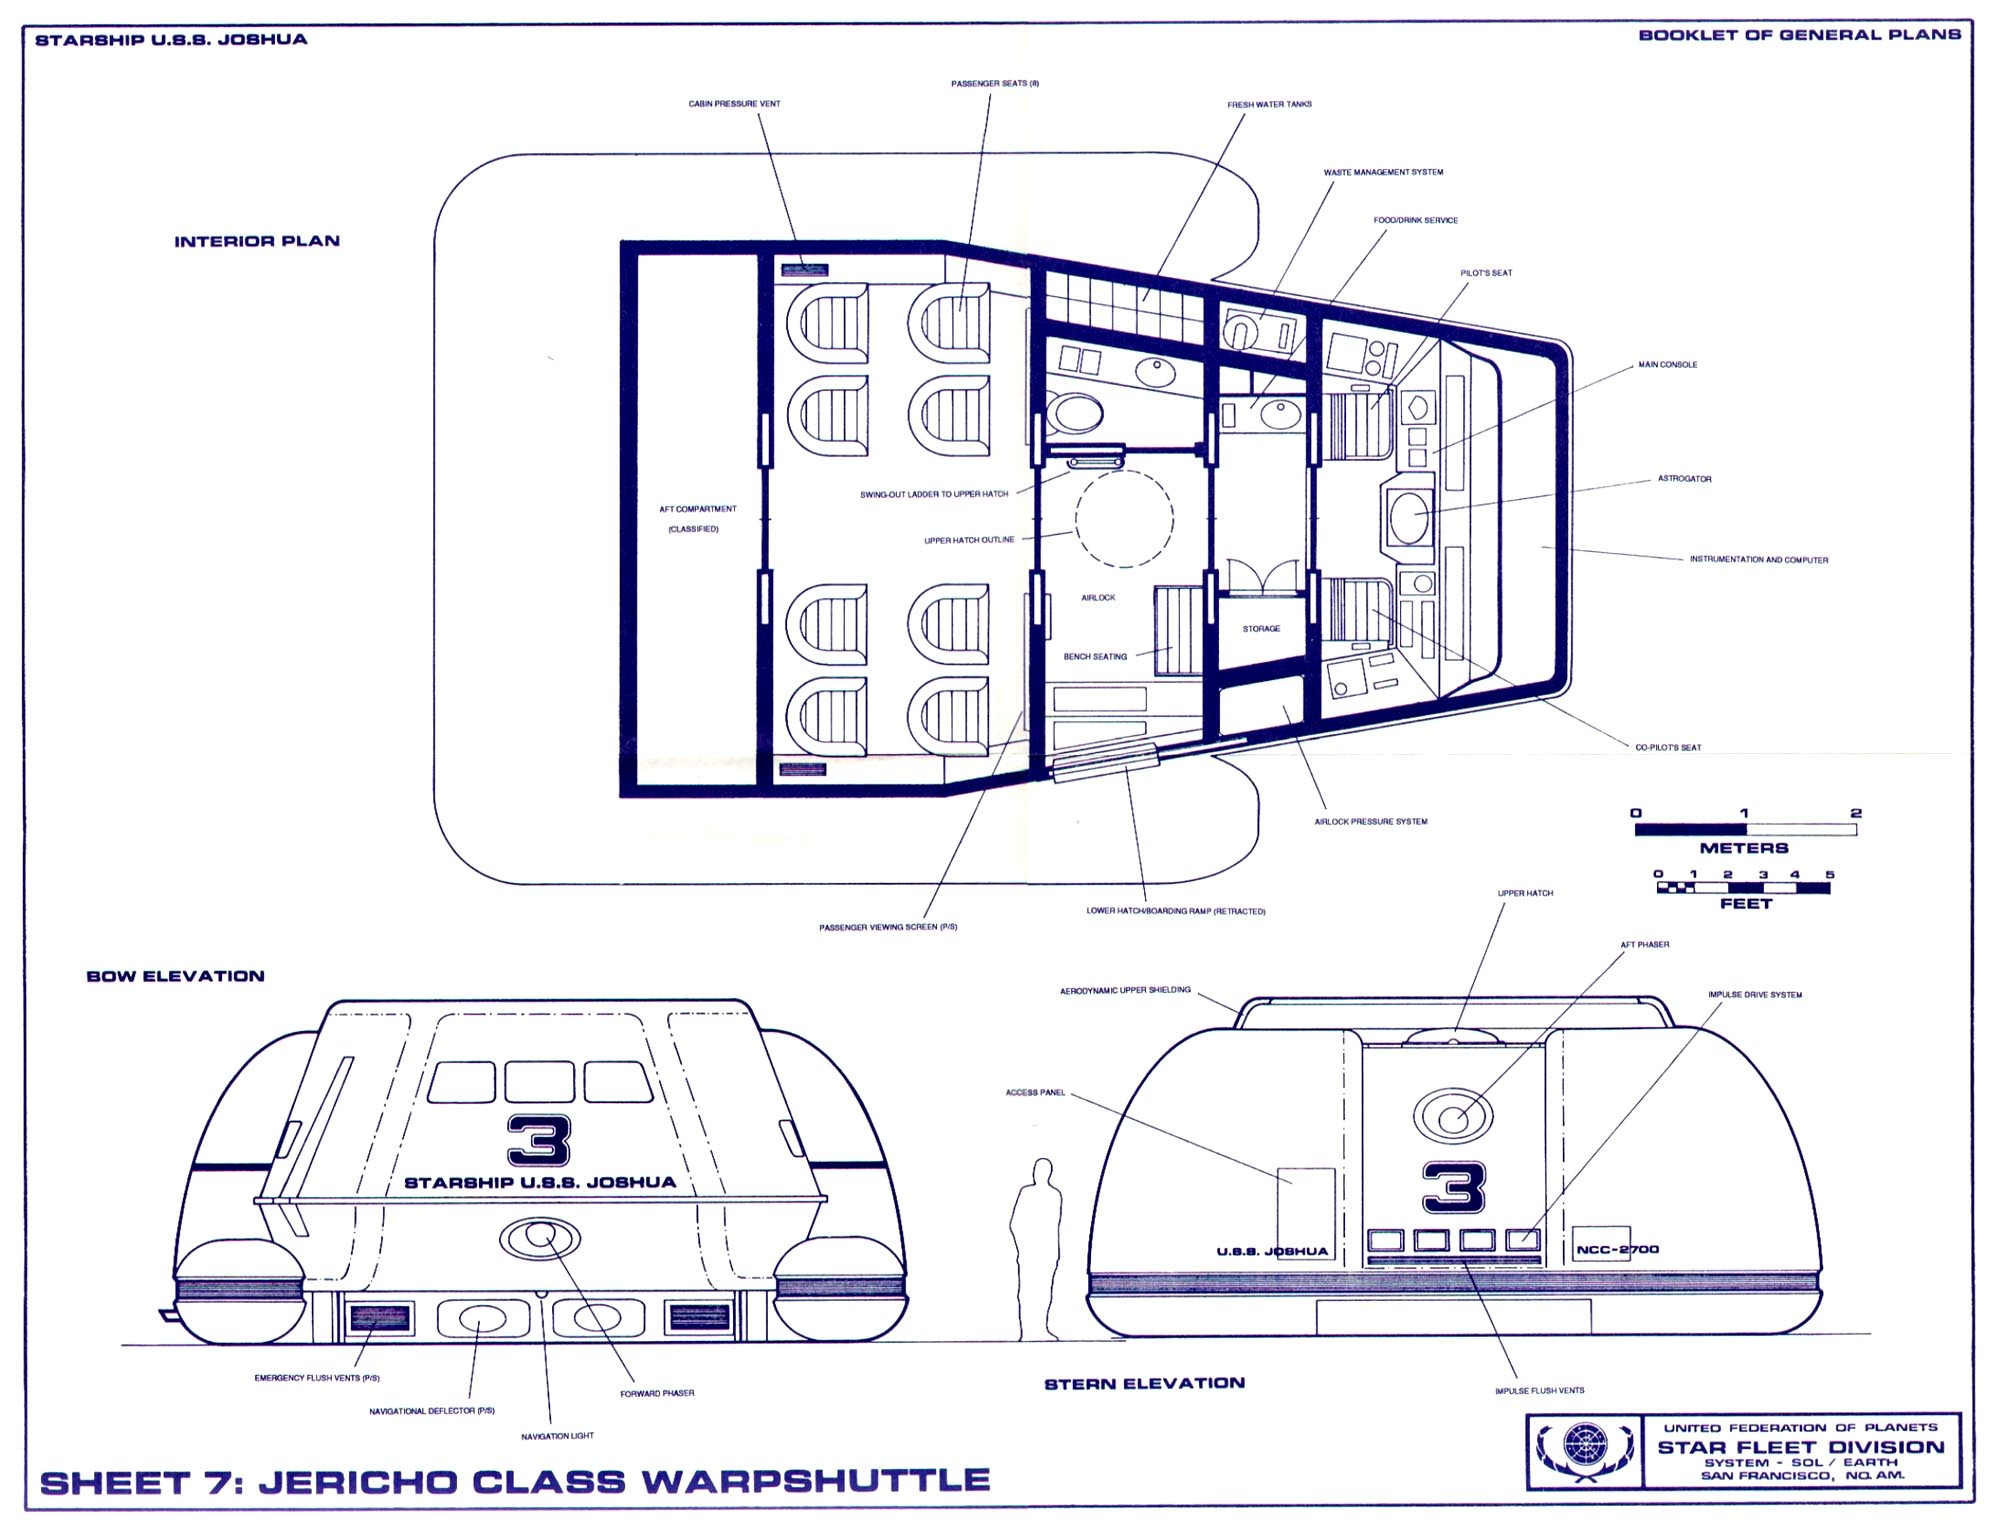 http://www.cygnus-x1.net/links/lcars/blueprints/joshua-class-starship-sheet-7.jpg